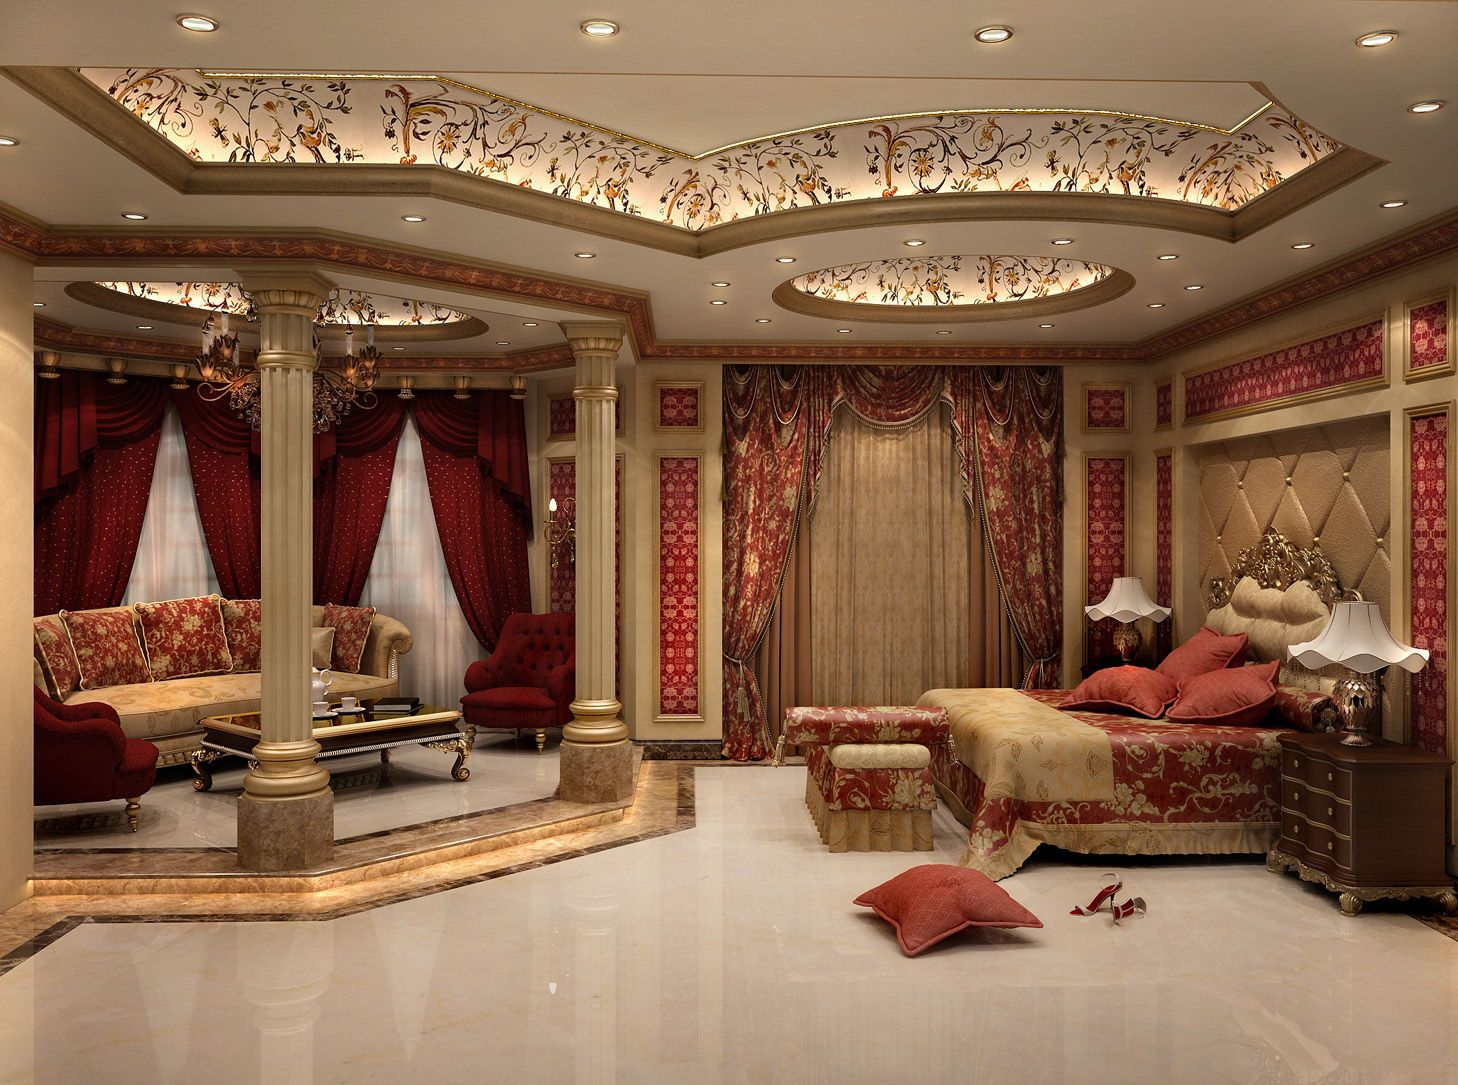 Castle master bedroom - 50 Of The Most Amazing Master Bedrooms We Ve Ever Seen